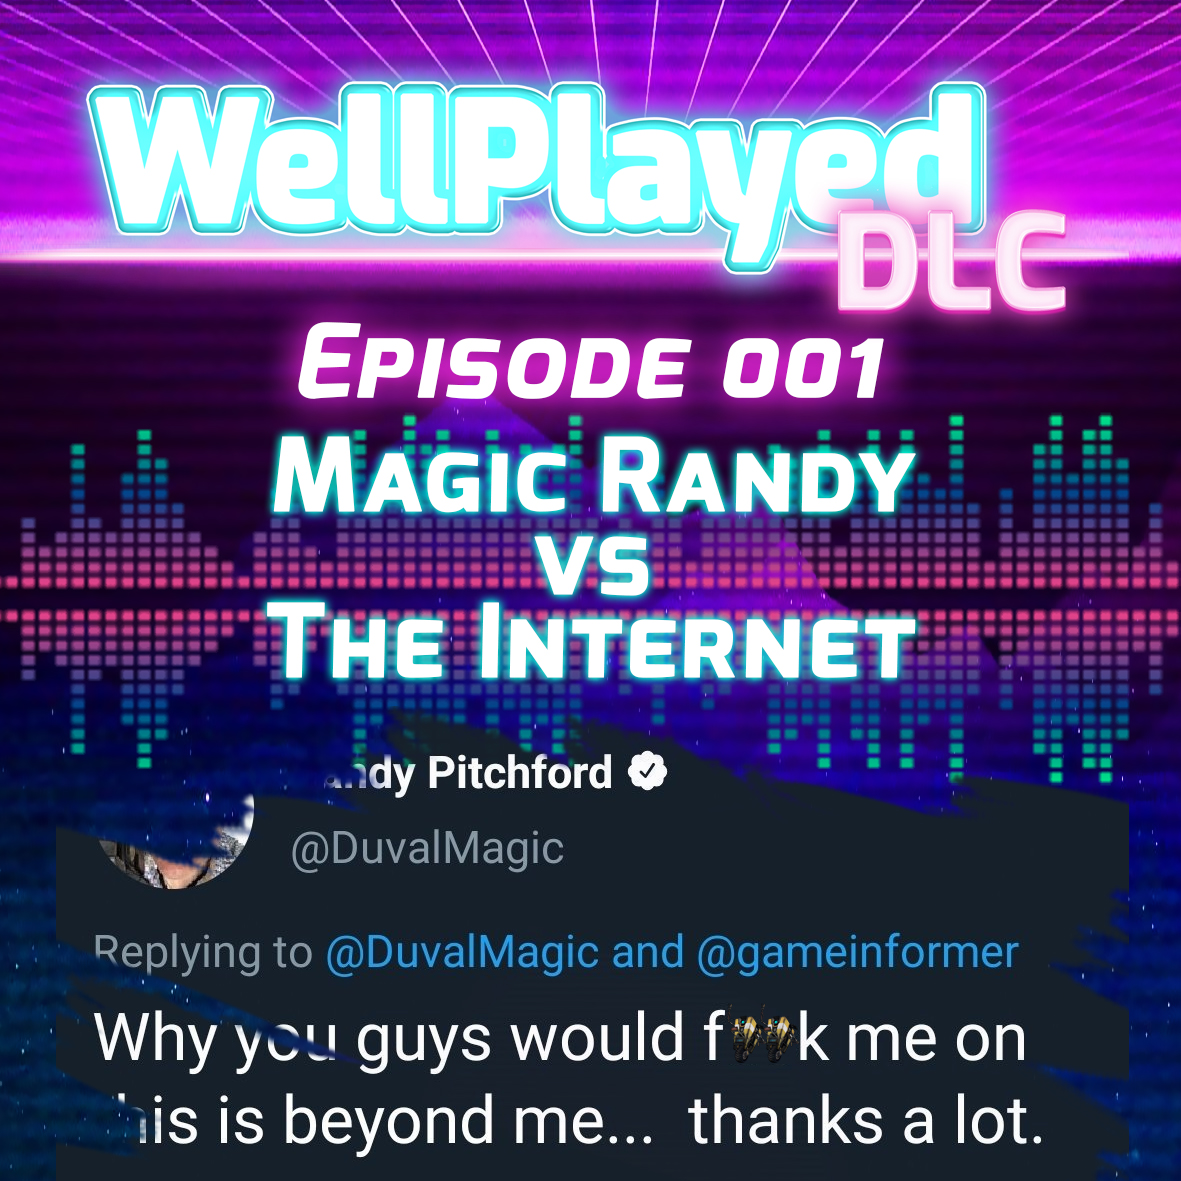 The WellPlayed DLC Podcast Episode 001 – Magic Randy vs The Internet